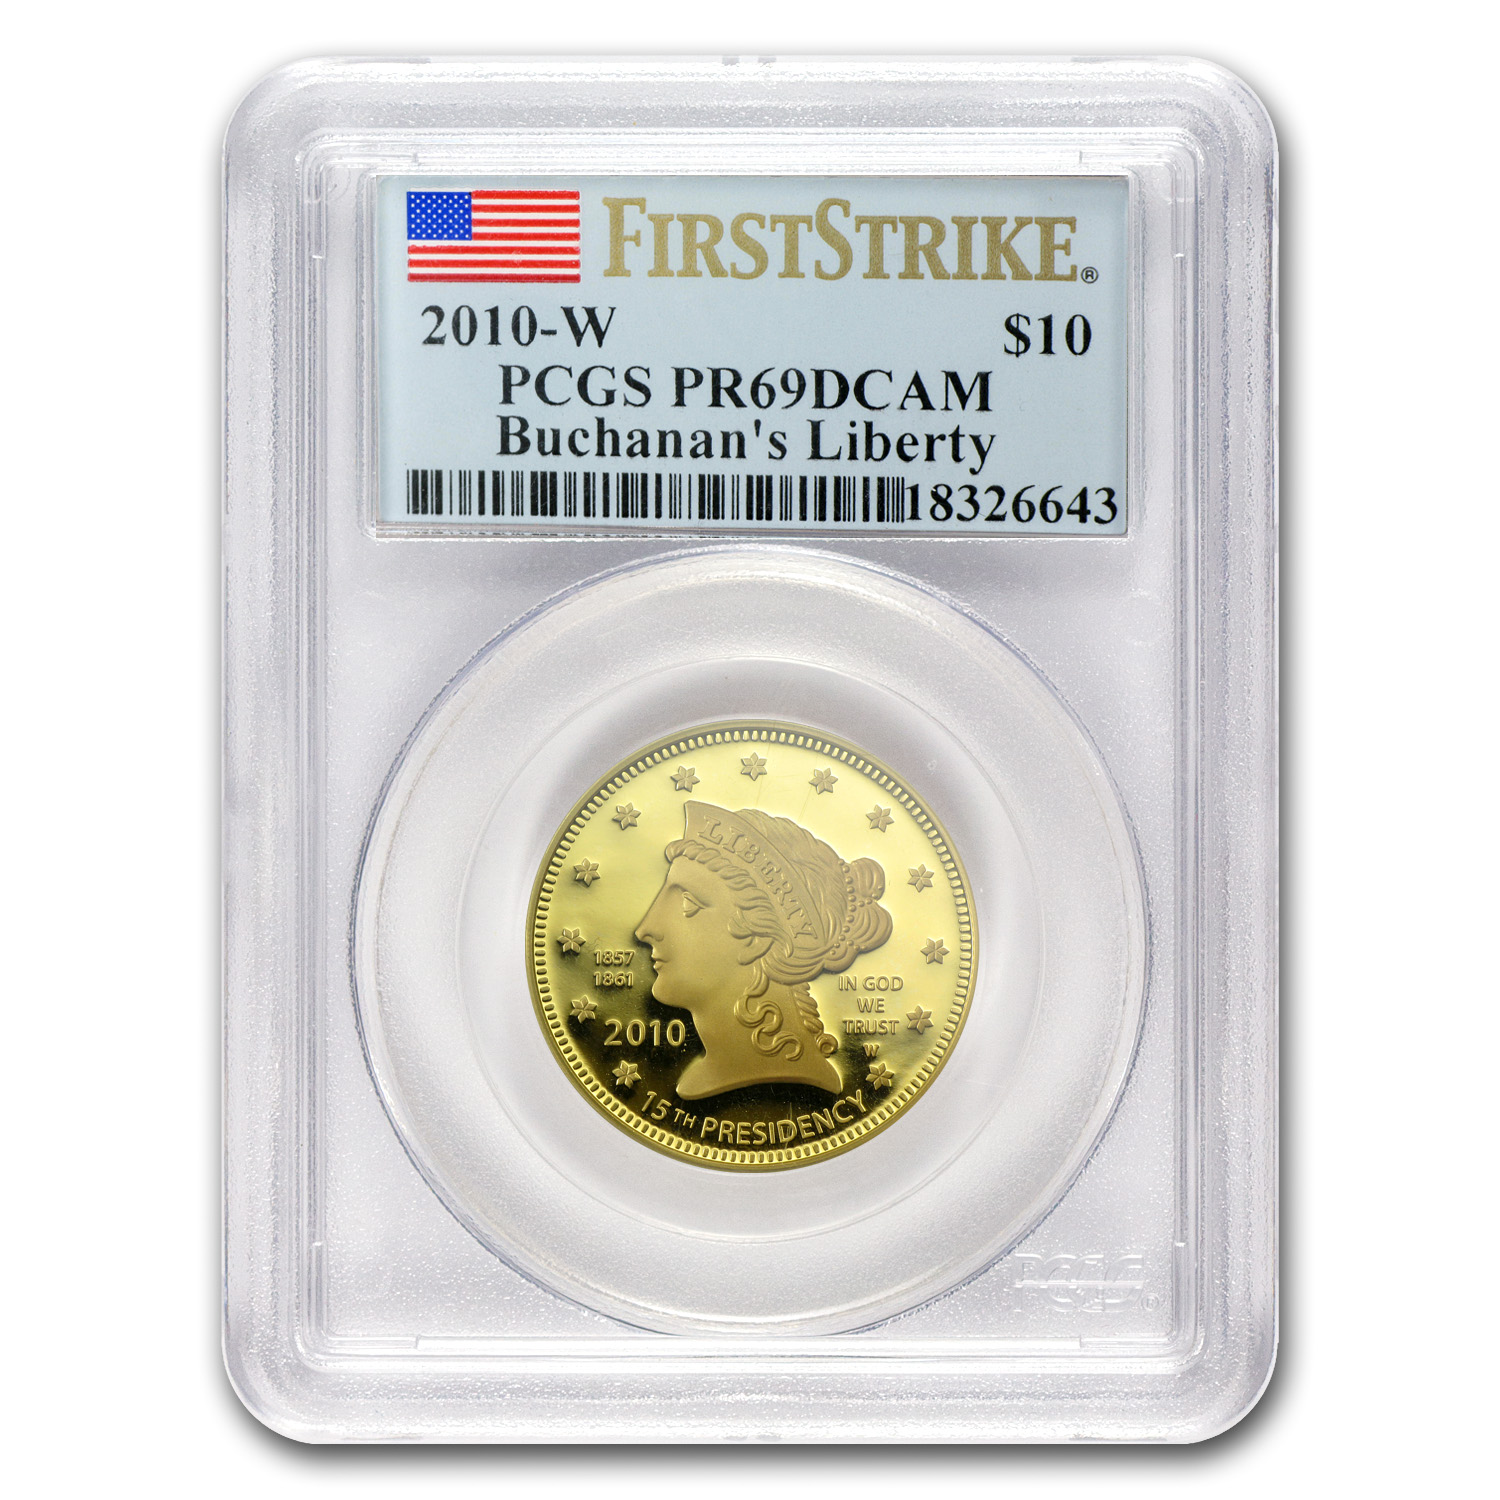 2010-W 1/2 oz Proof Gold Buchanan's Liberty PR-69 PCGS (FS)